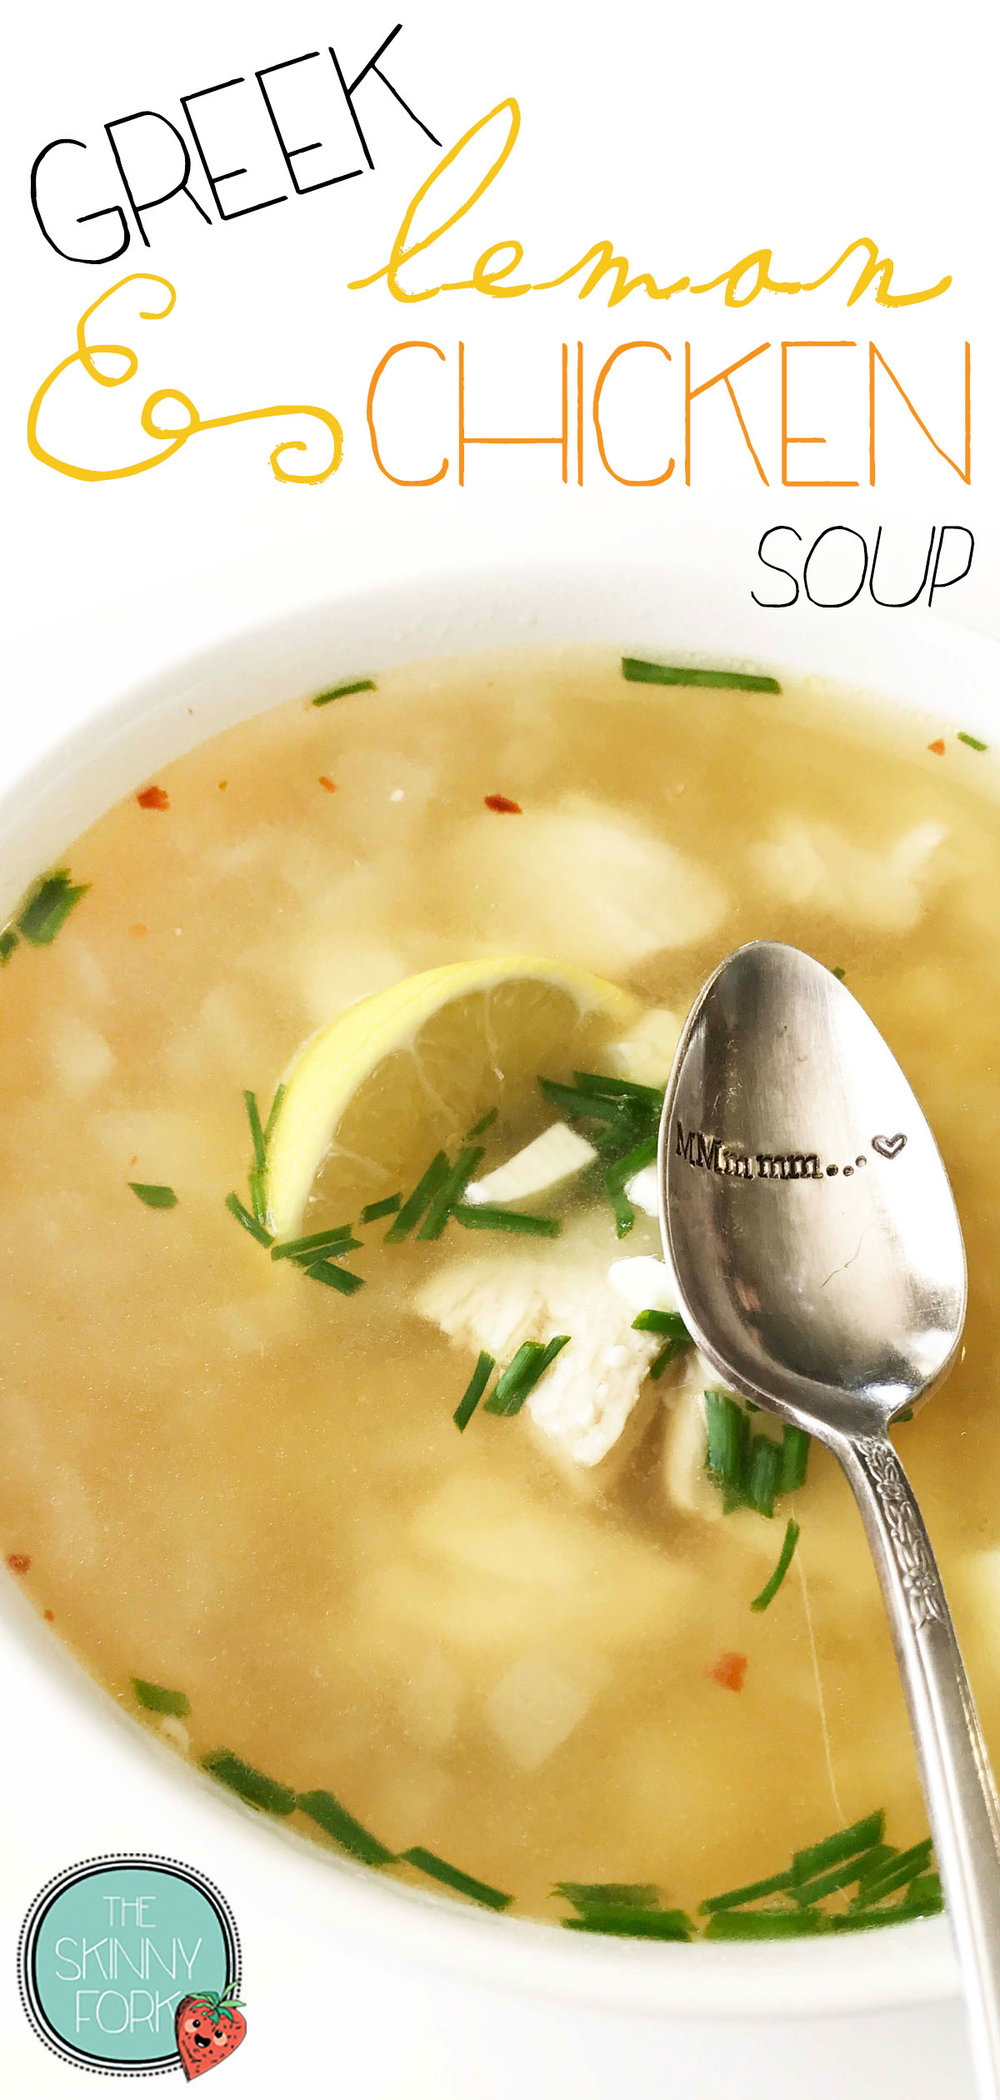 greek-chicken-soup-pin.jpg